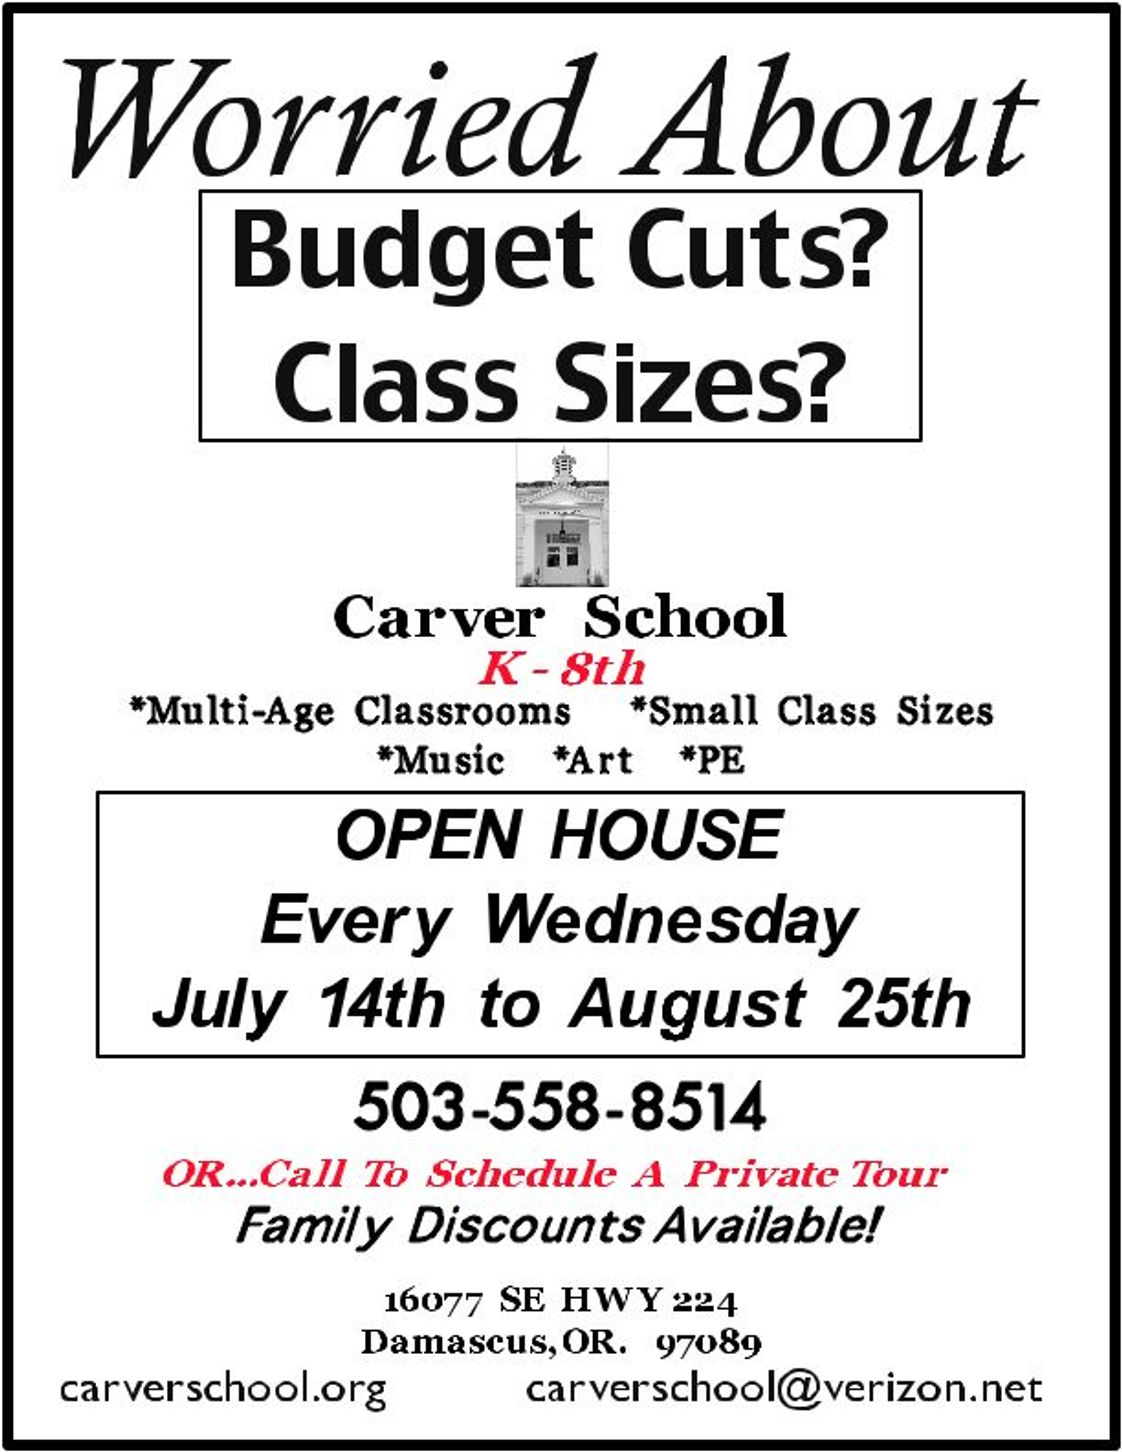 Carver School Photo #1 - Budget Cuts? Busing? Large Class Sizes?